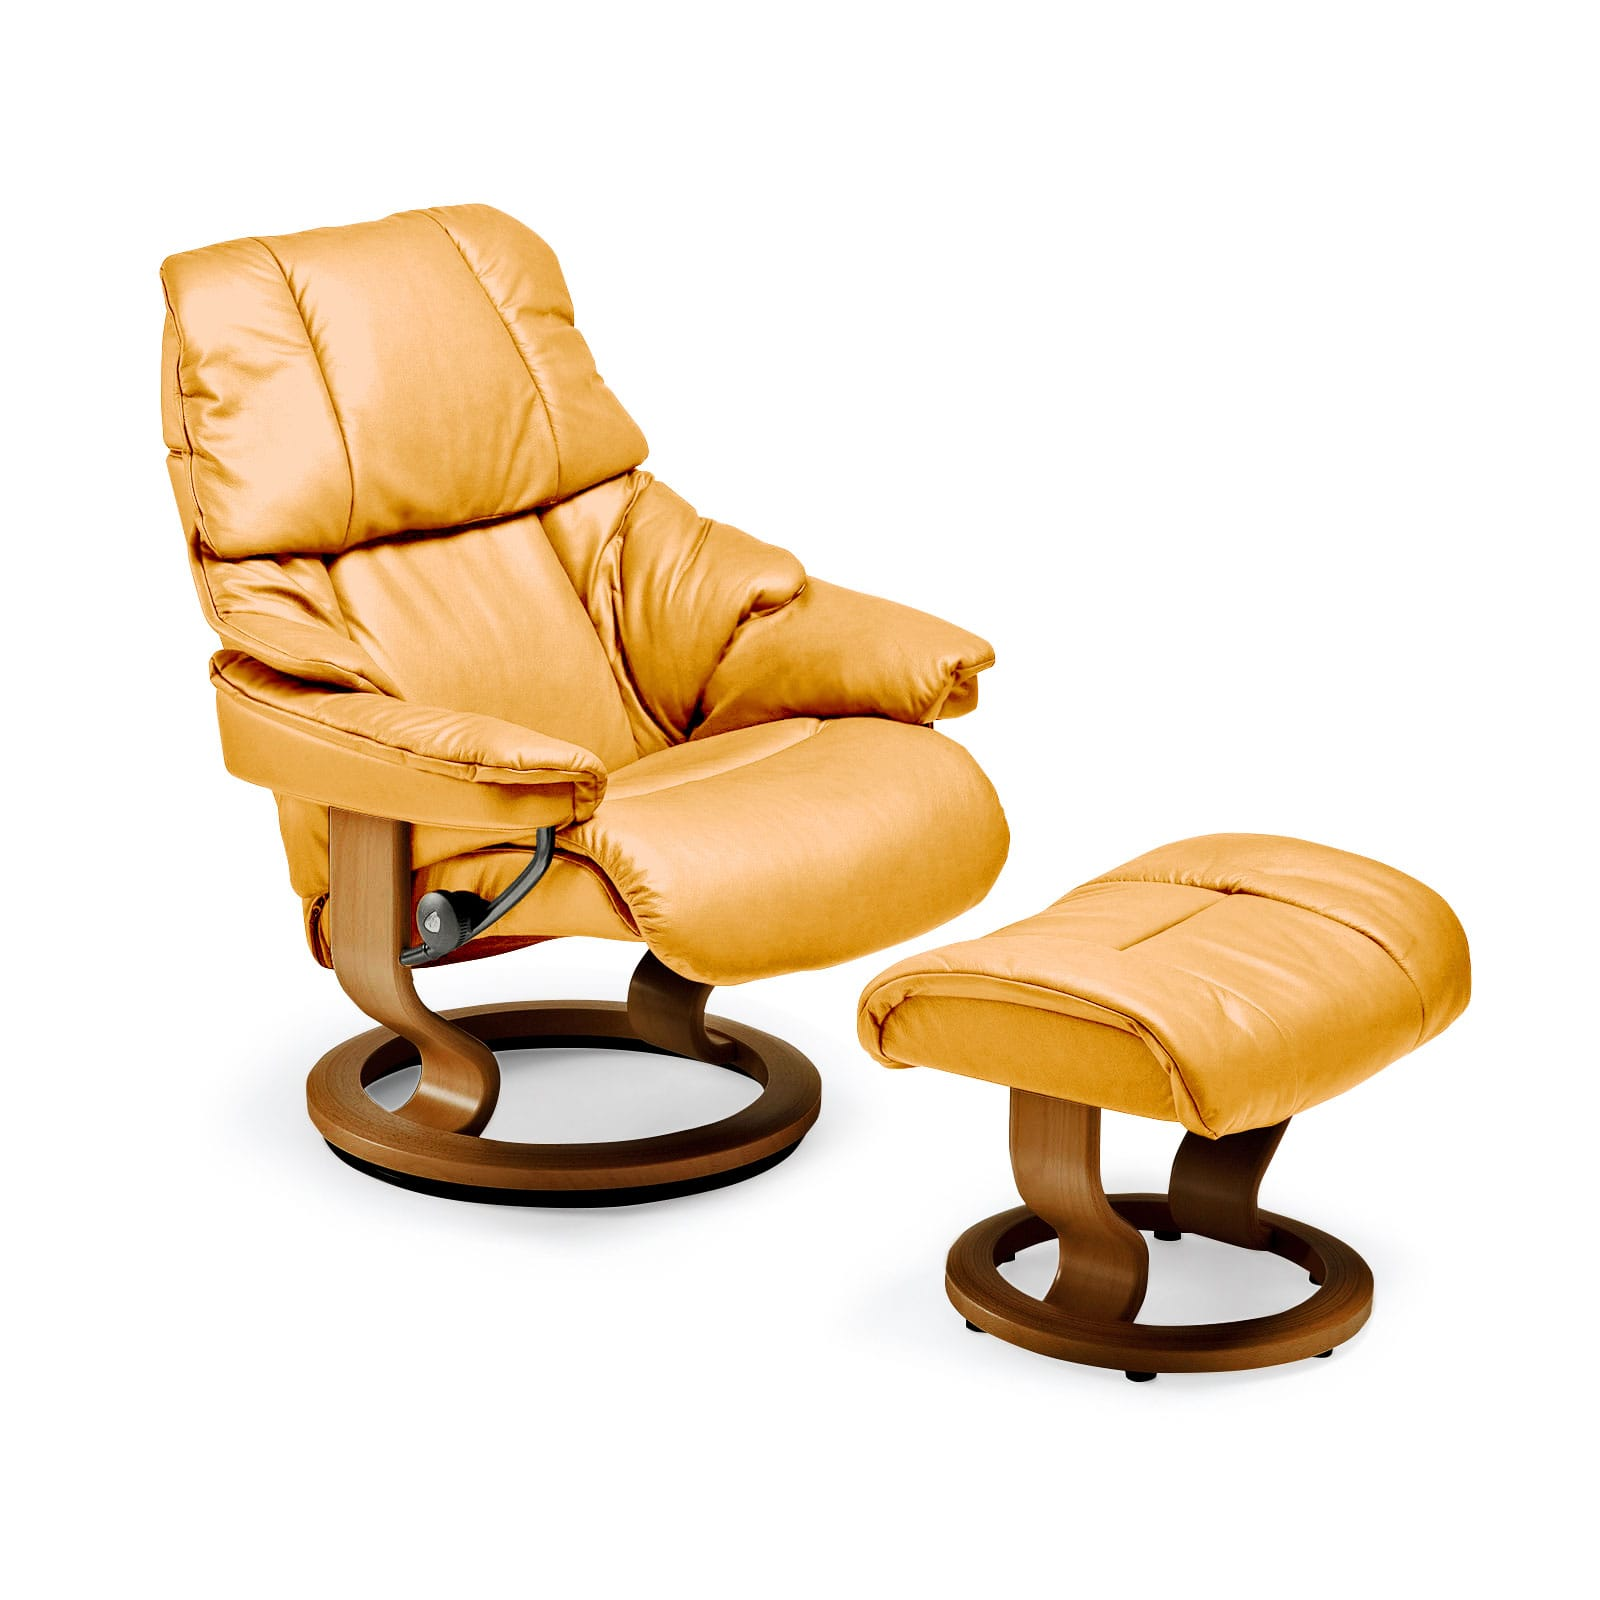 Stressless Sessel Berlin Stressless Sessel Reno L Classic Mit Hocker Stressless